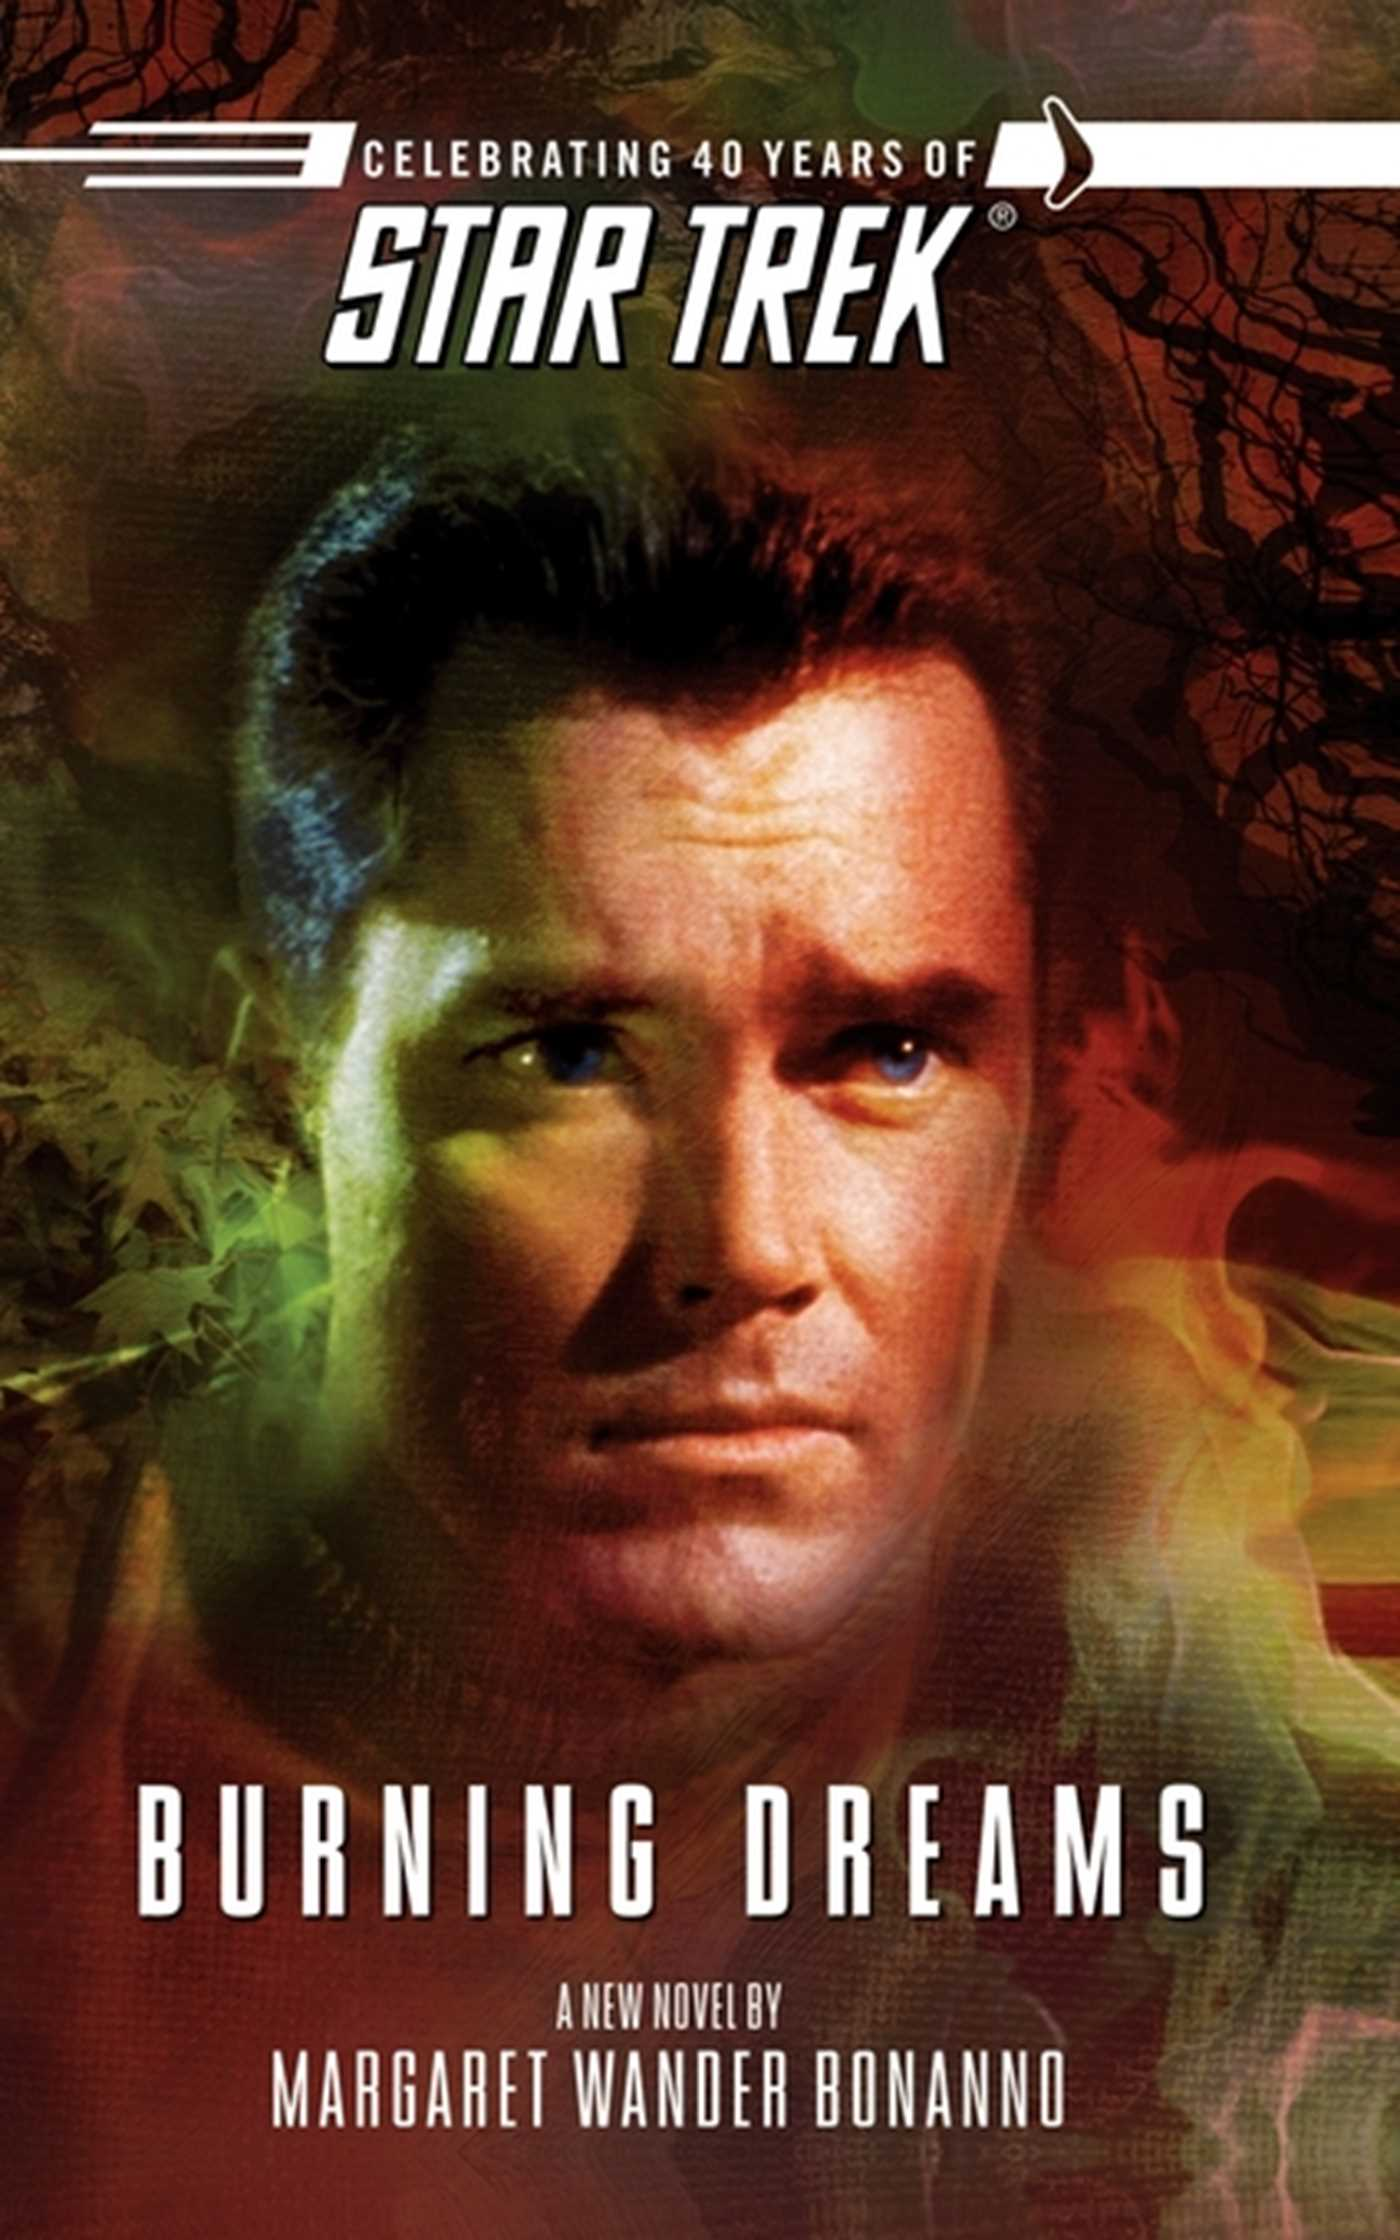 Star trek the original series burning dreams 9781416525370 hr